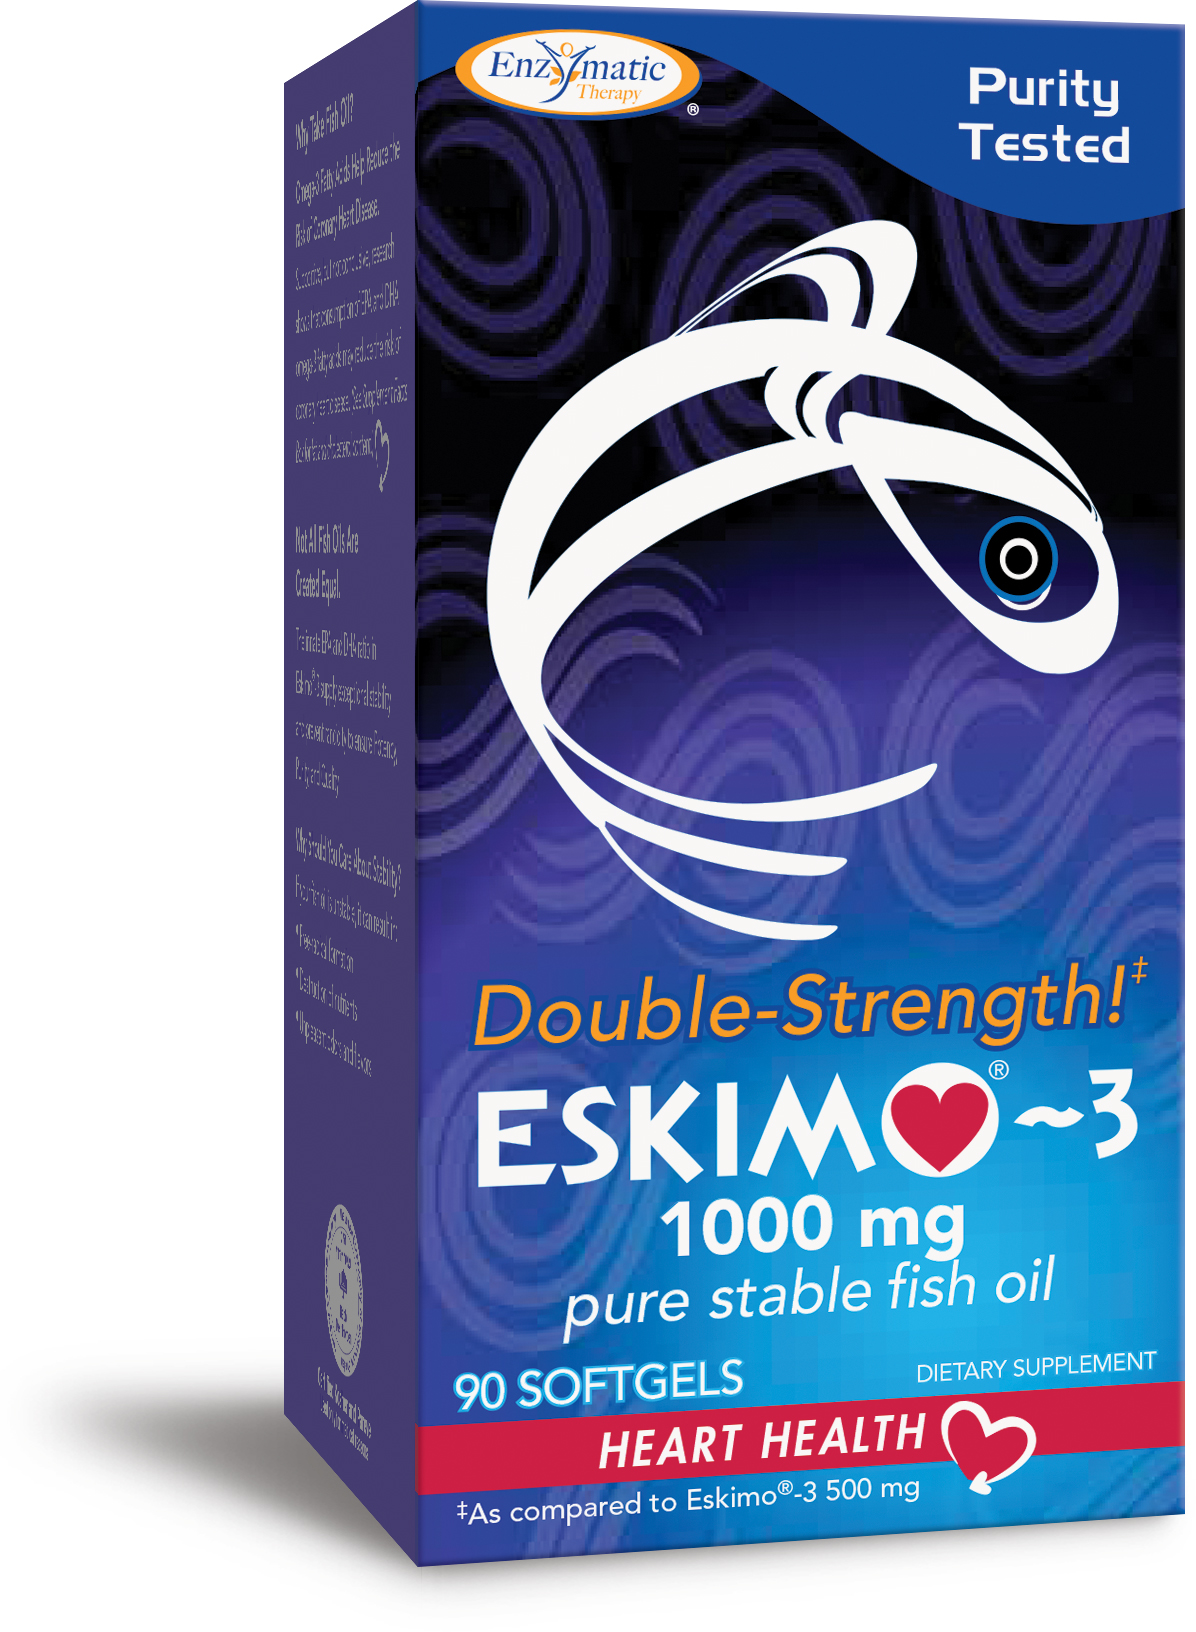 Eskimo-3 Omega-3 Fish Oil Double Strength 1000 mg 90 sgels by Enzymatic Therapy